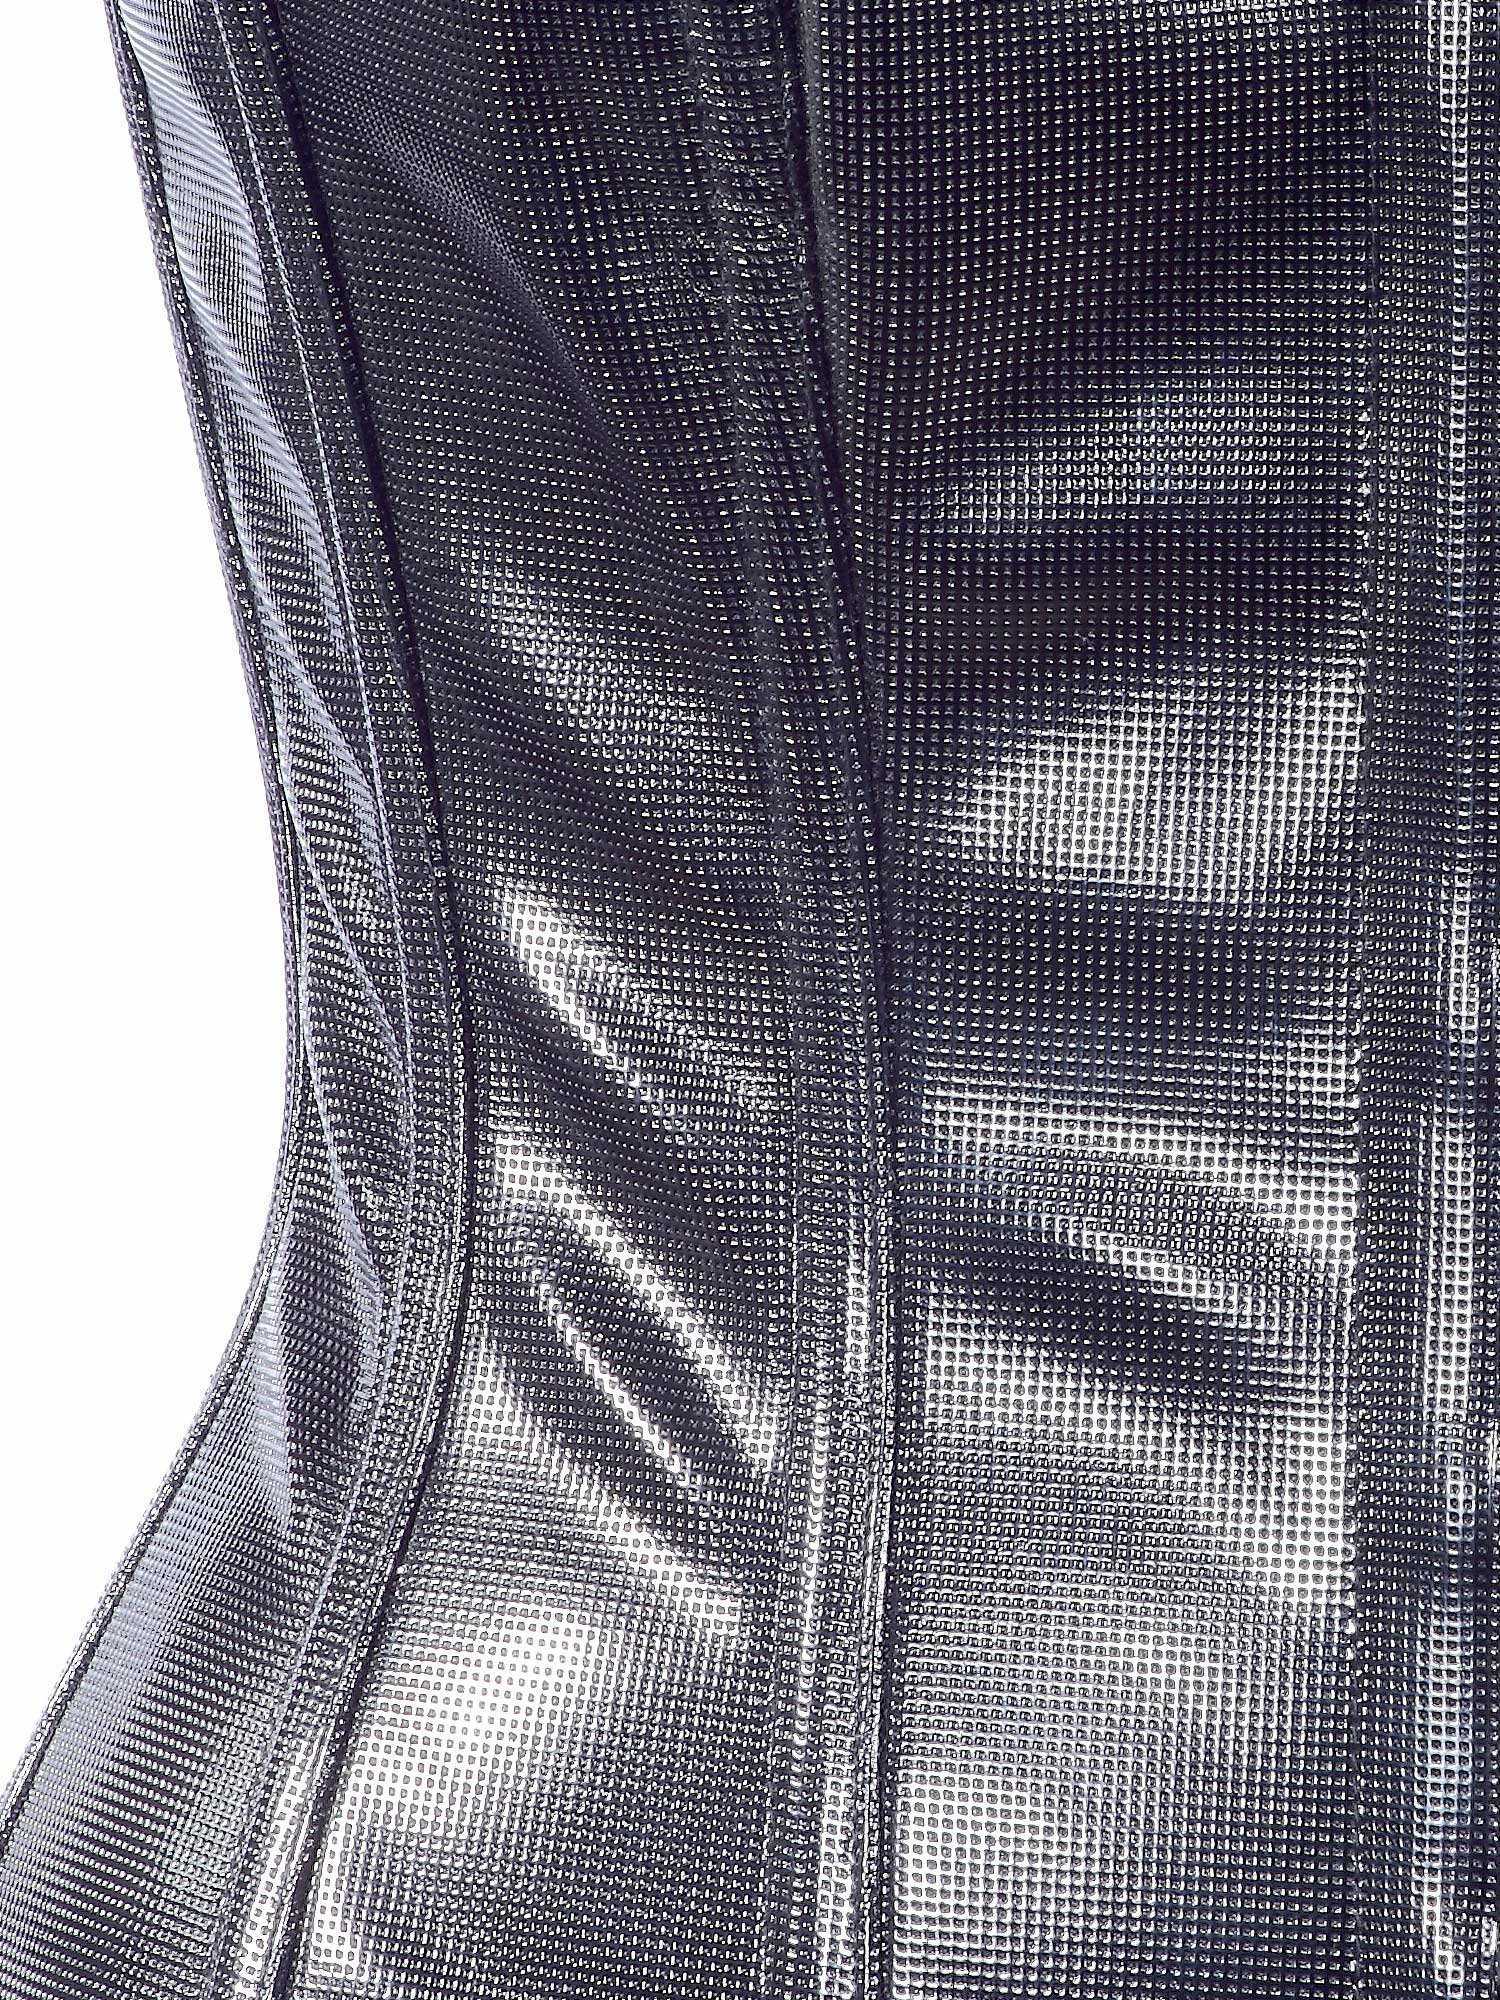 check_design_black_faux_leather_fabric_steel_boning_overbust_corset_waist_cincher_bustier_bustiers_and_corsets_2.jpg